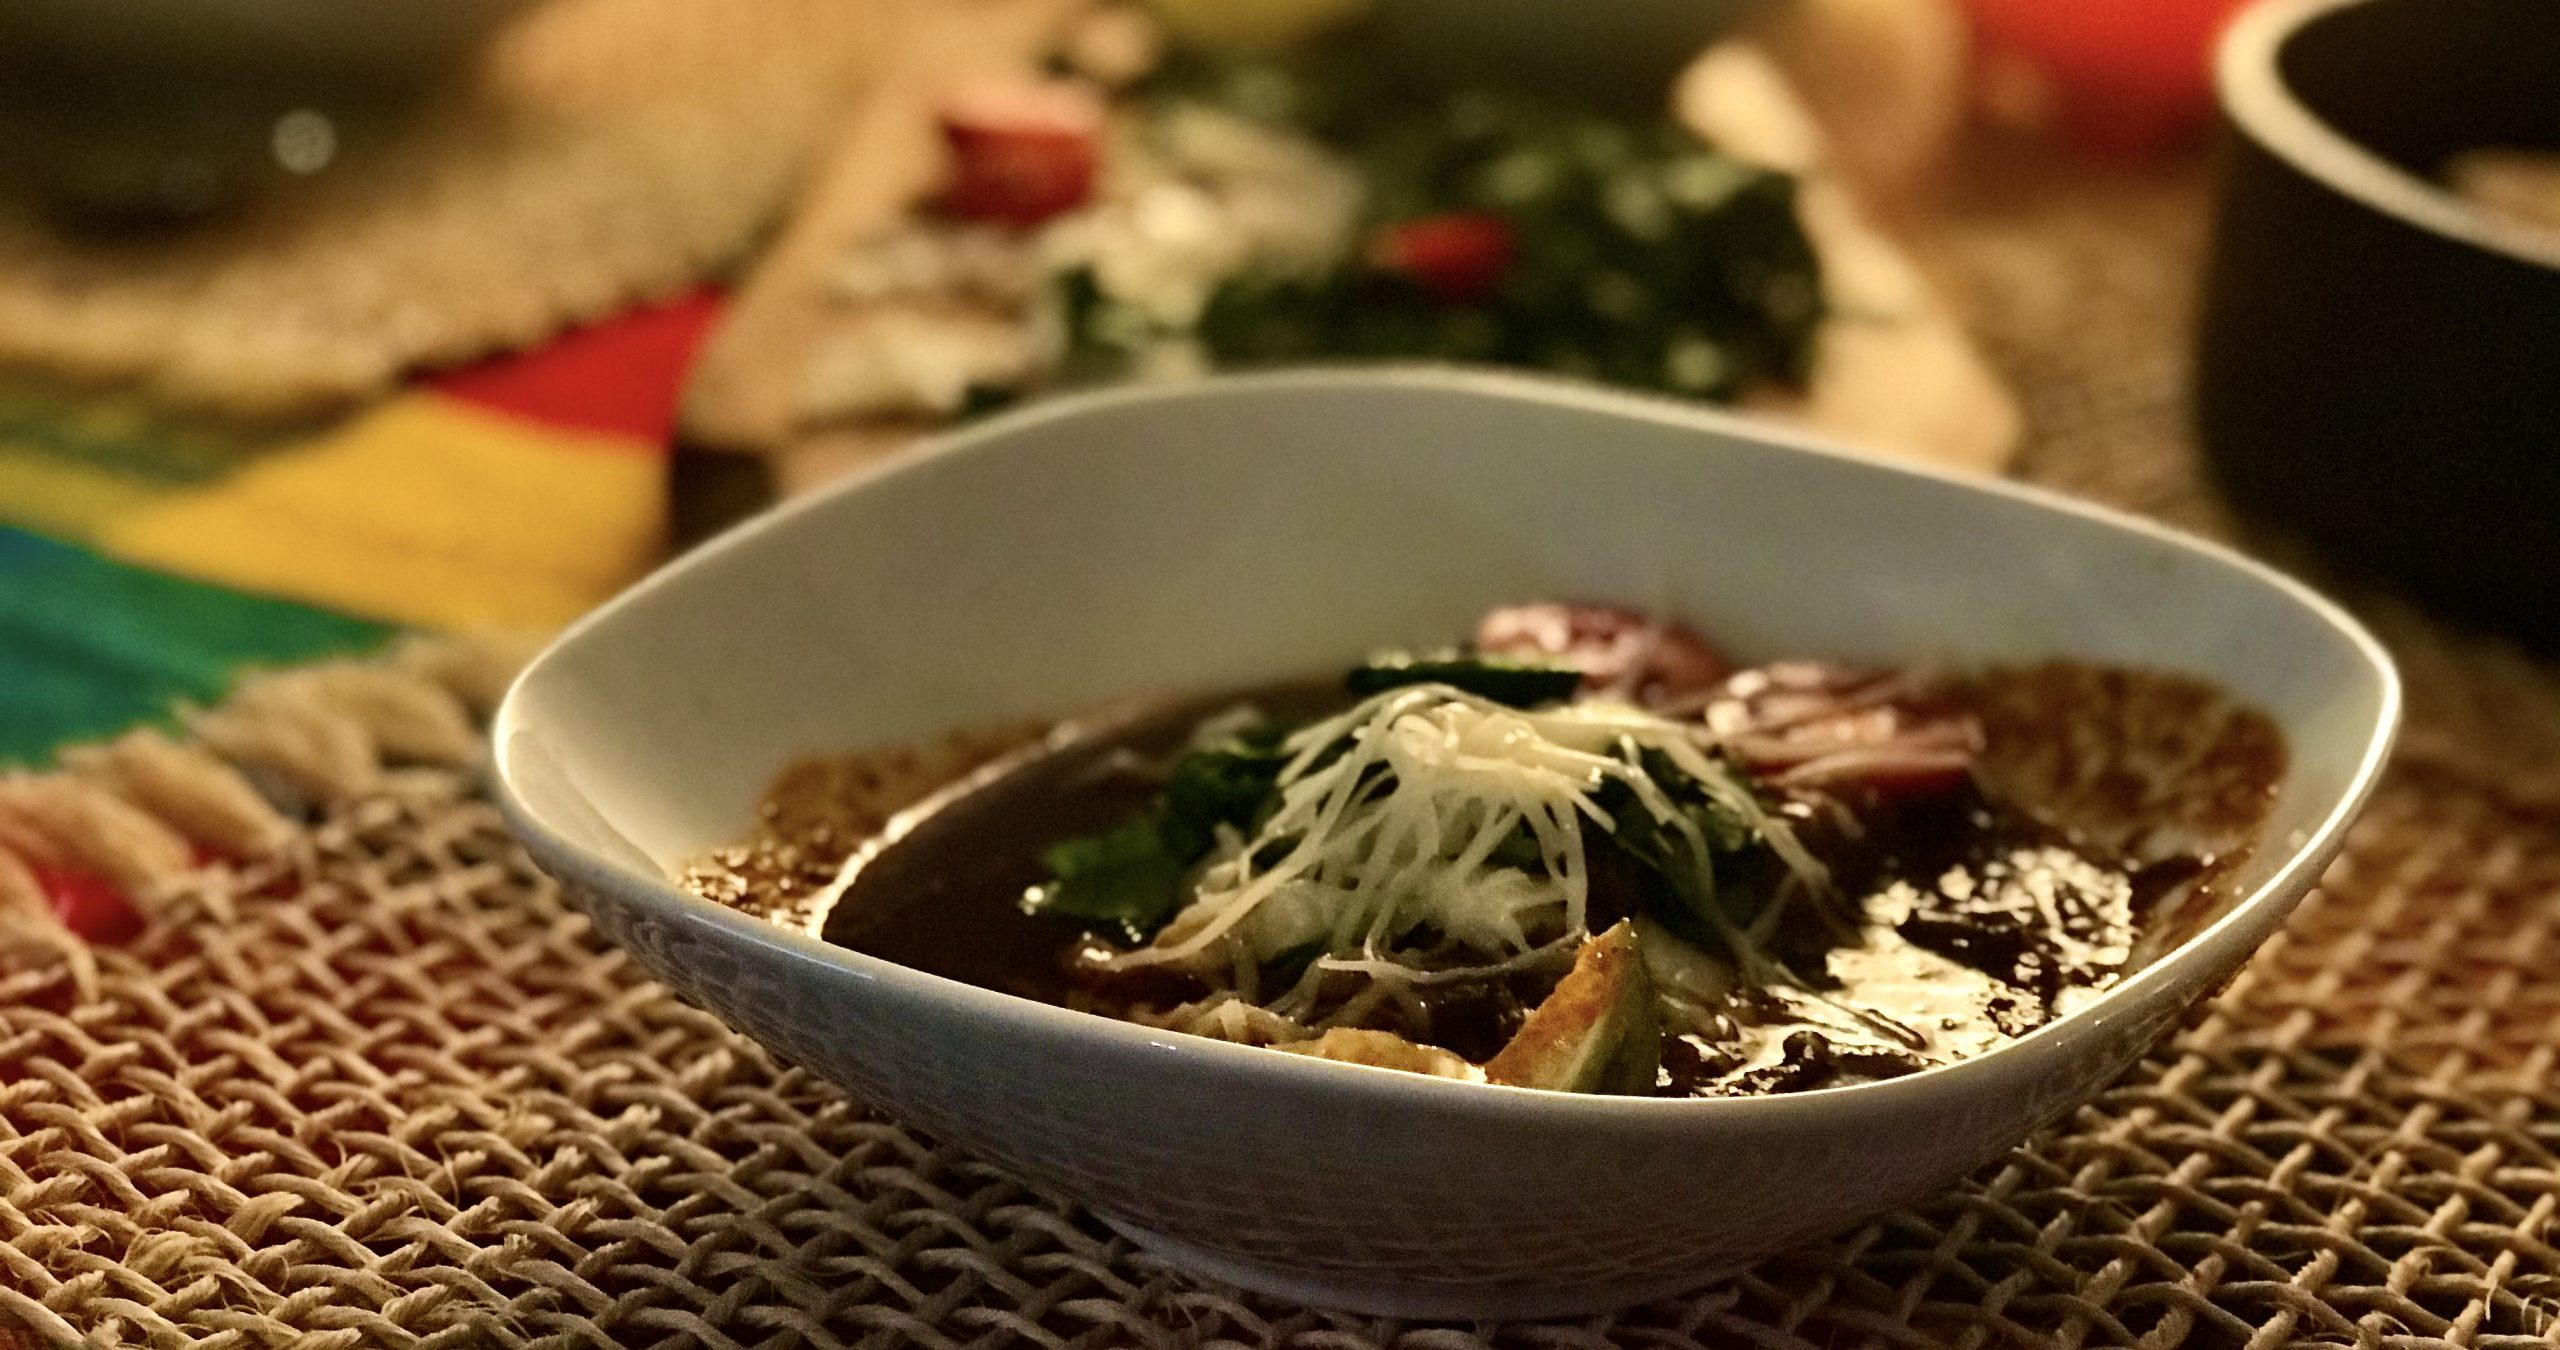 Authentic Birria Soup